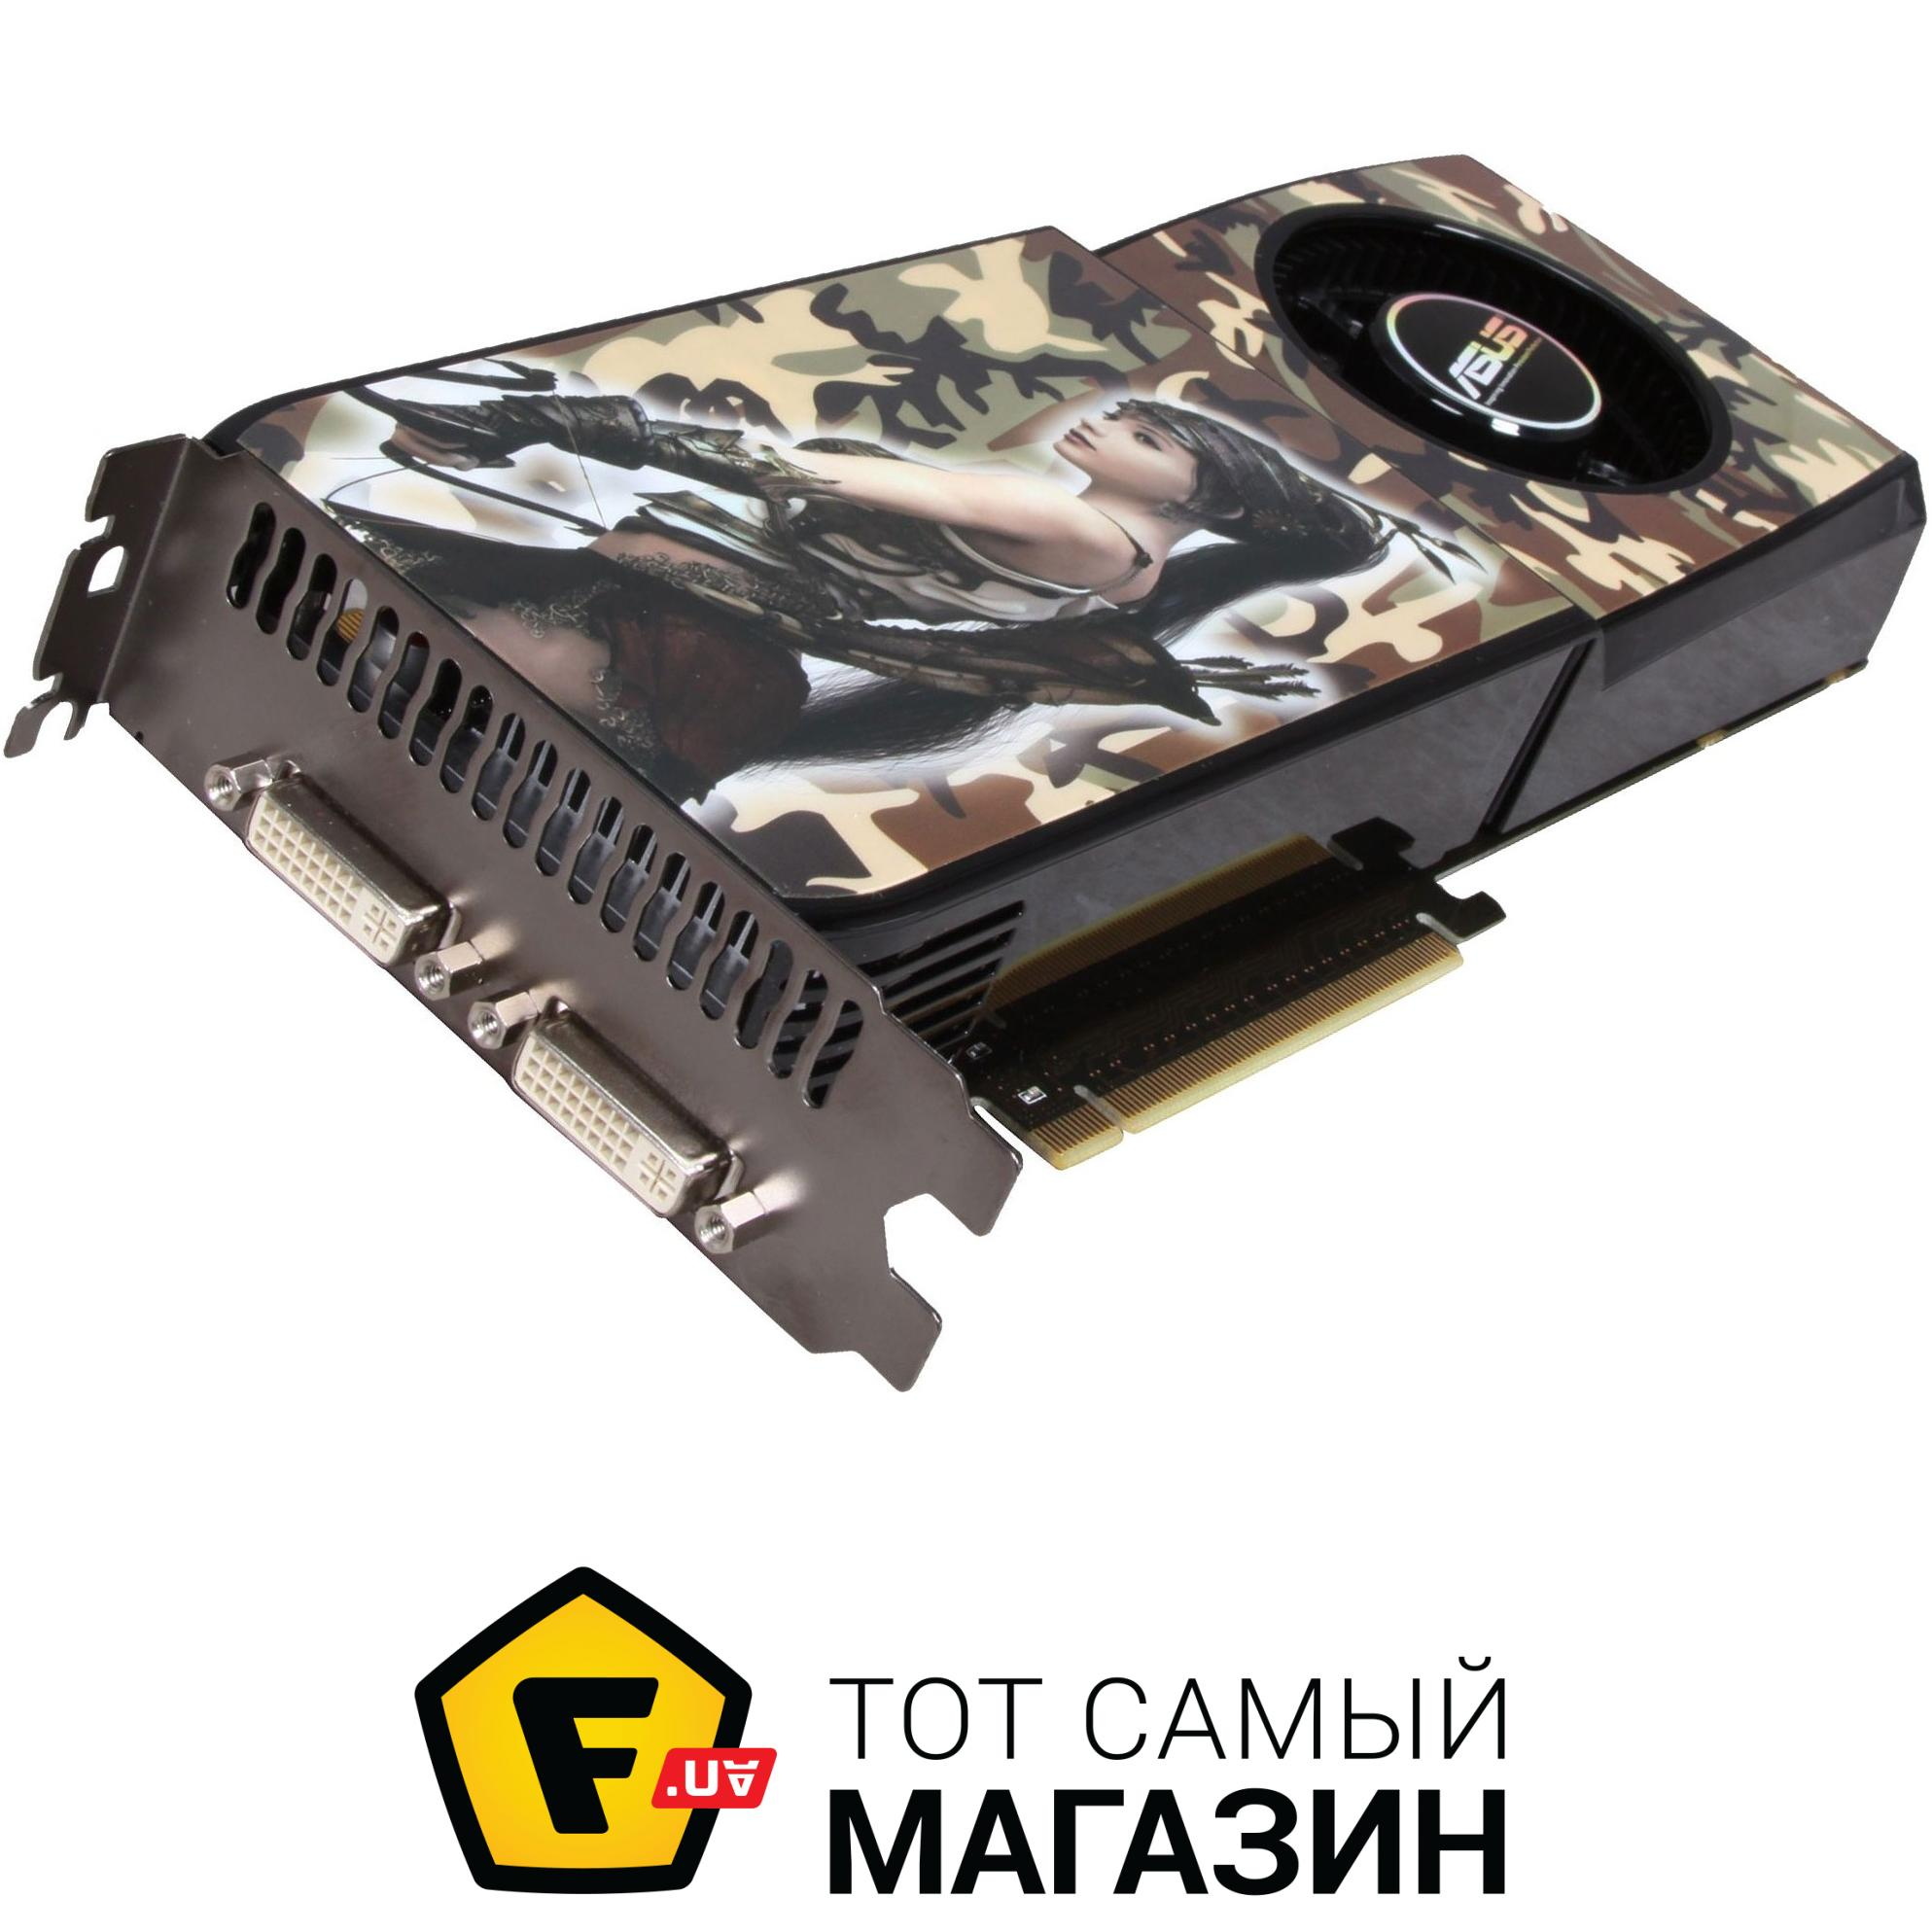 ASUS GEFORCE GTX260 ENGTX260 GL+/2DI/896MD3 DRIVERS WINDOWS